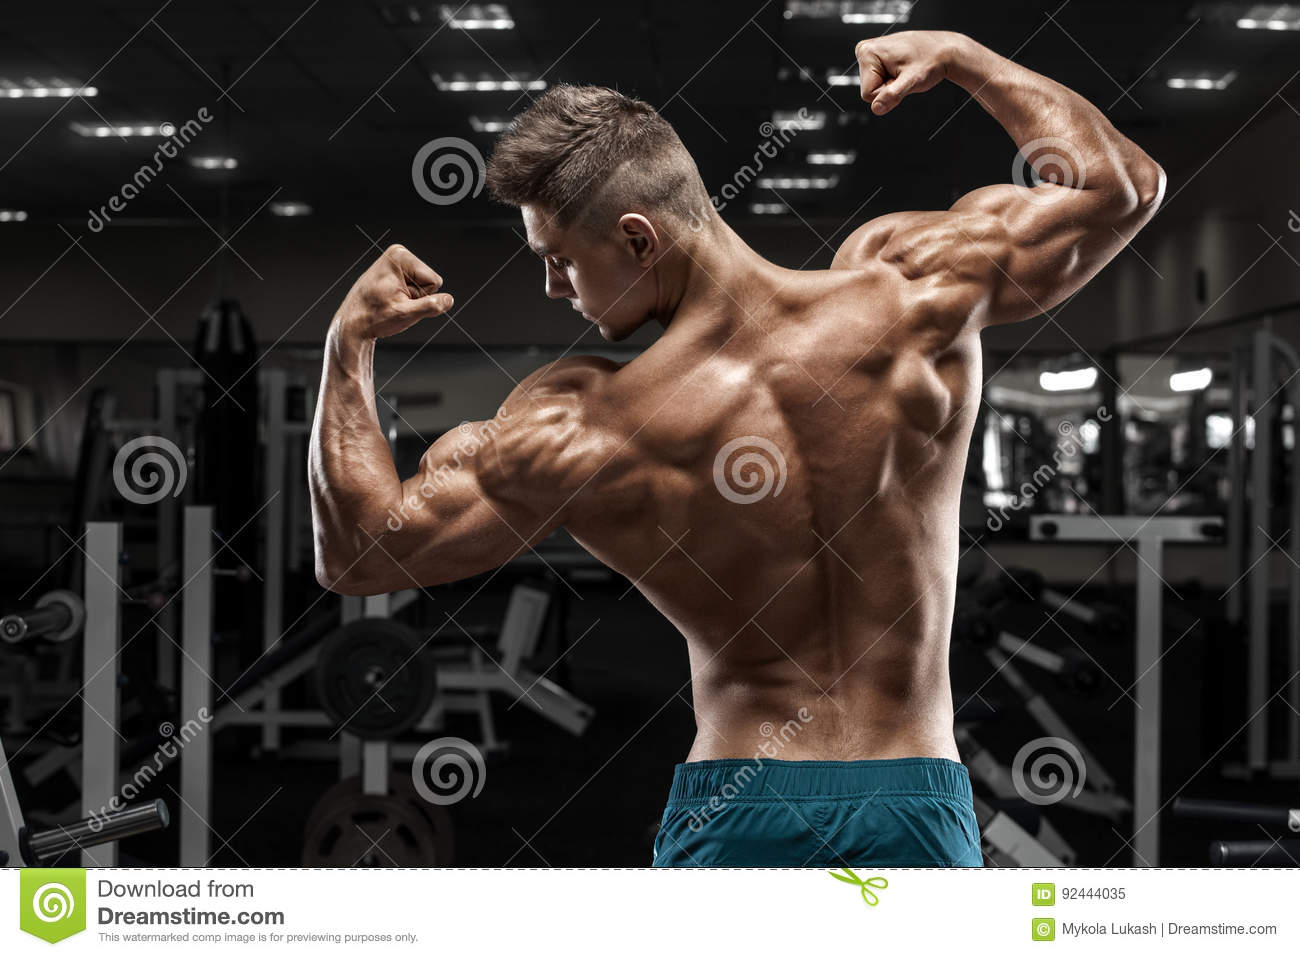 Handsome Power Athletic Man On Diet Training Pumping Up